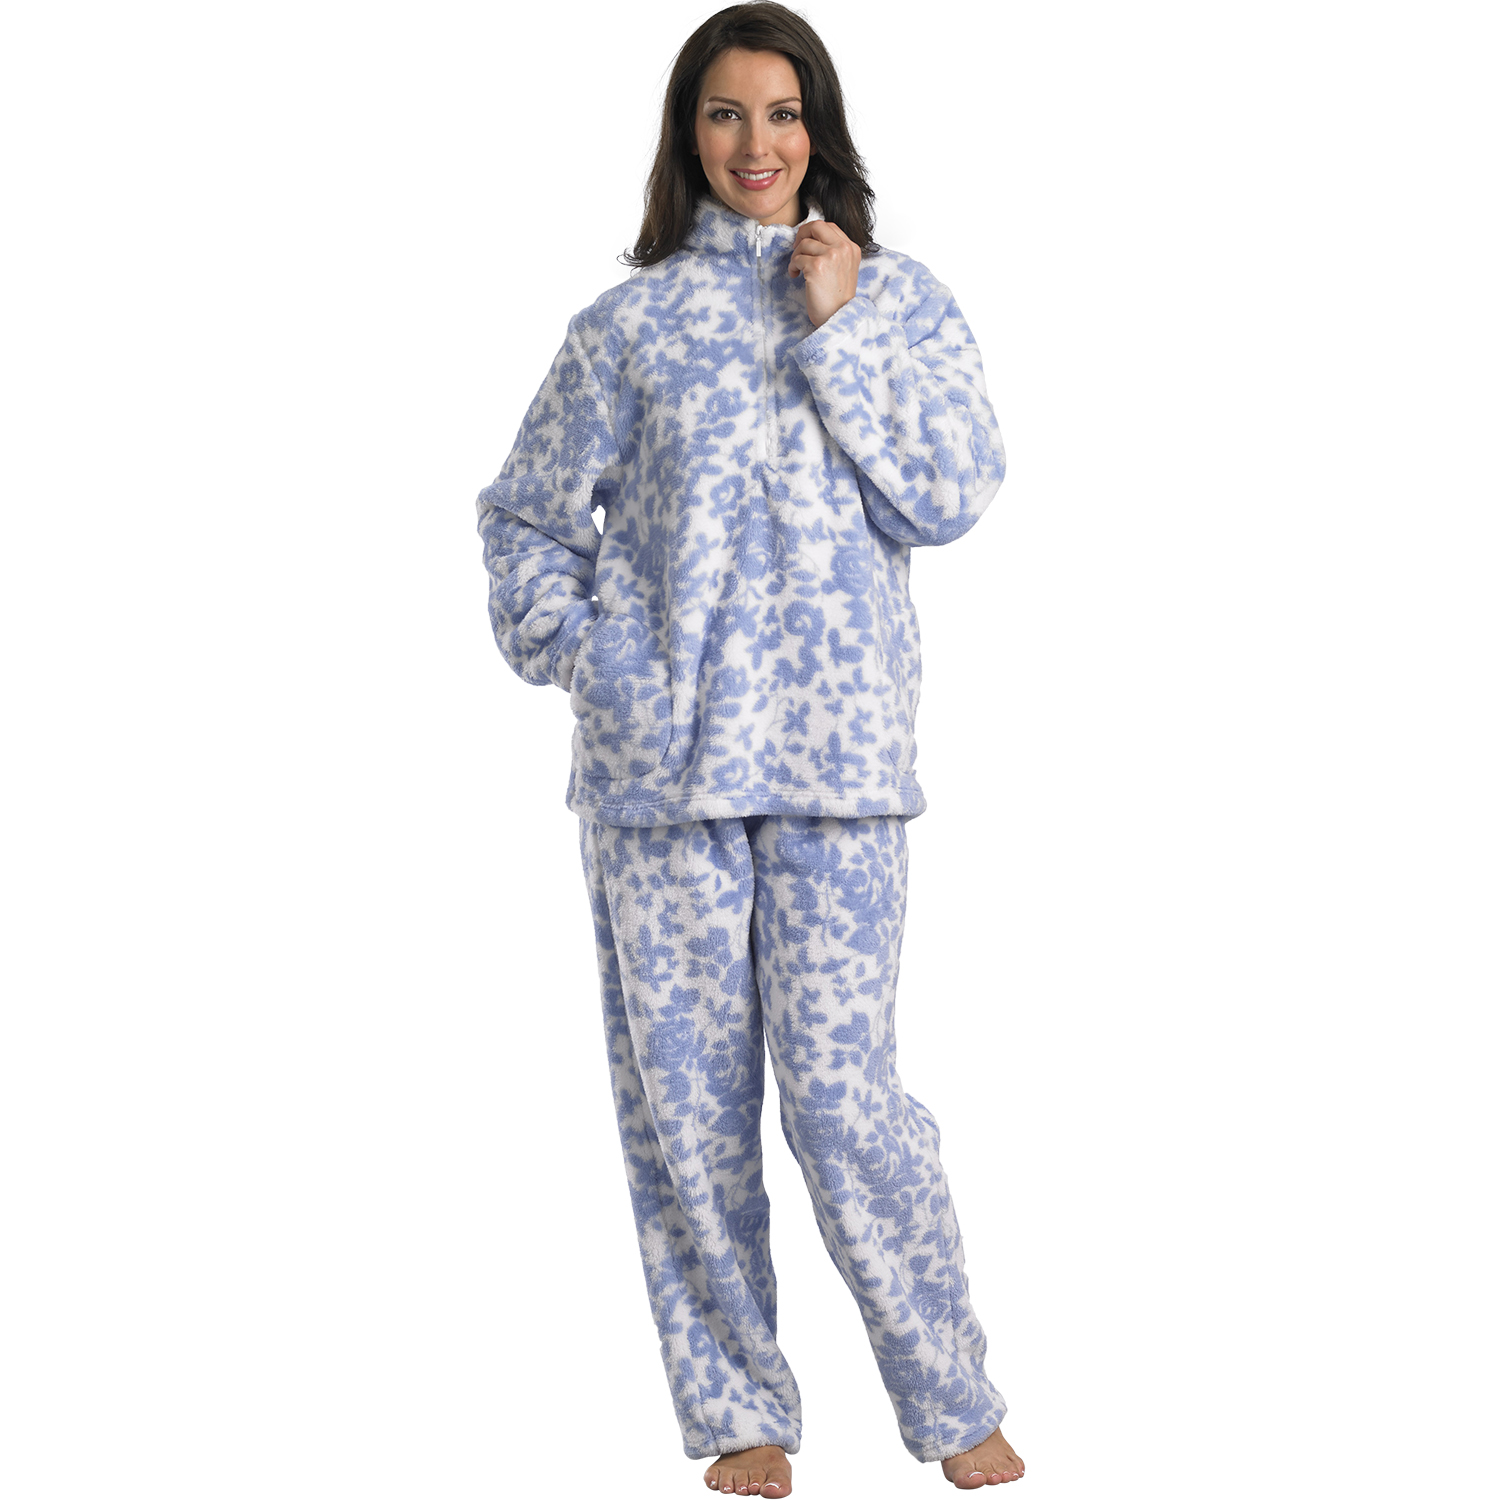 Find great deals on eBay for womens fleece loungewear. Shop with confidence.